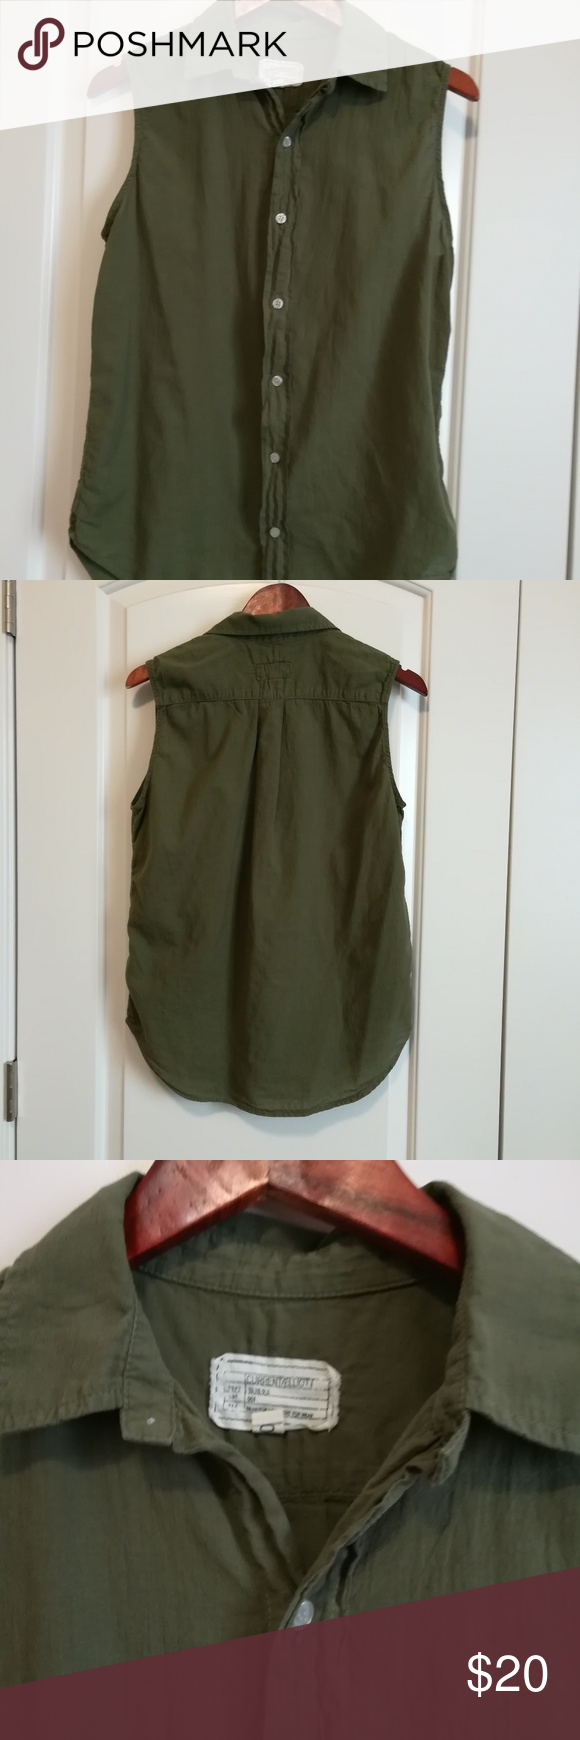 6f6c424a044c7 Current Elliot army green blouse Pre owned gently used the sleeveless grad  shirt in gauzy